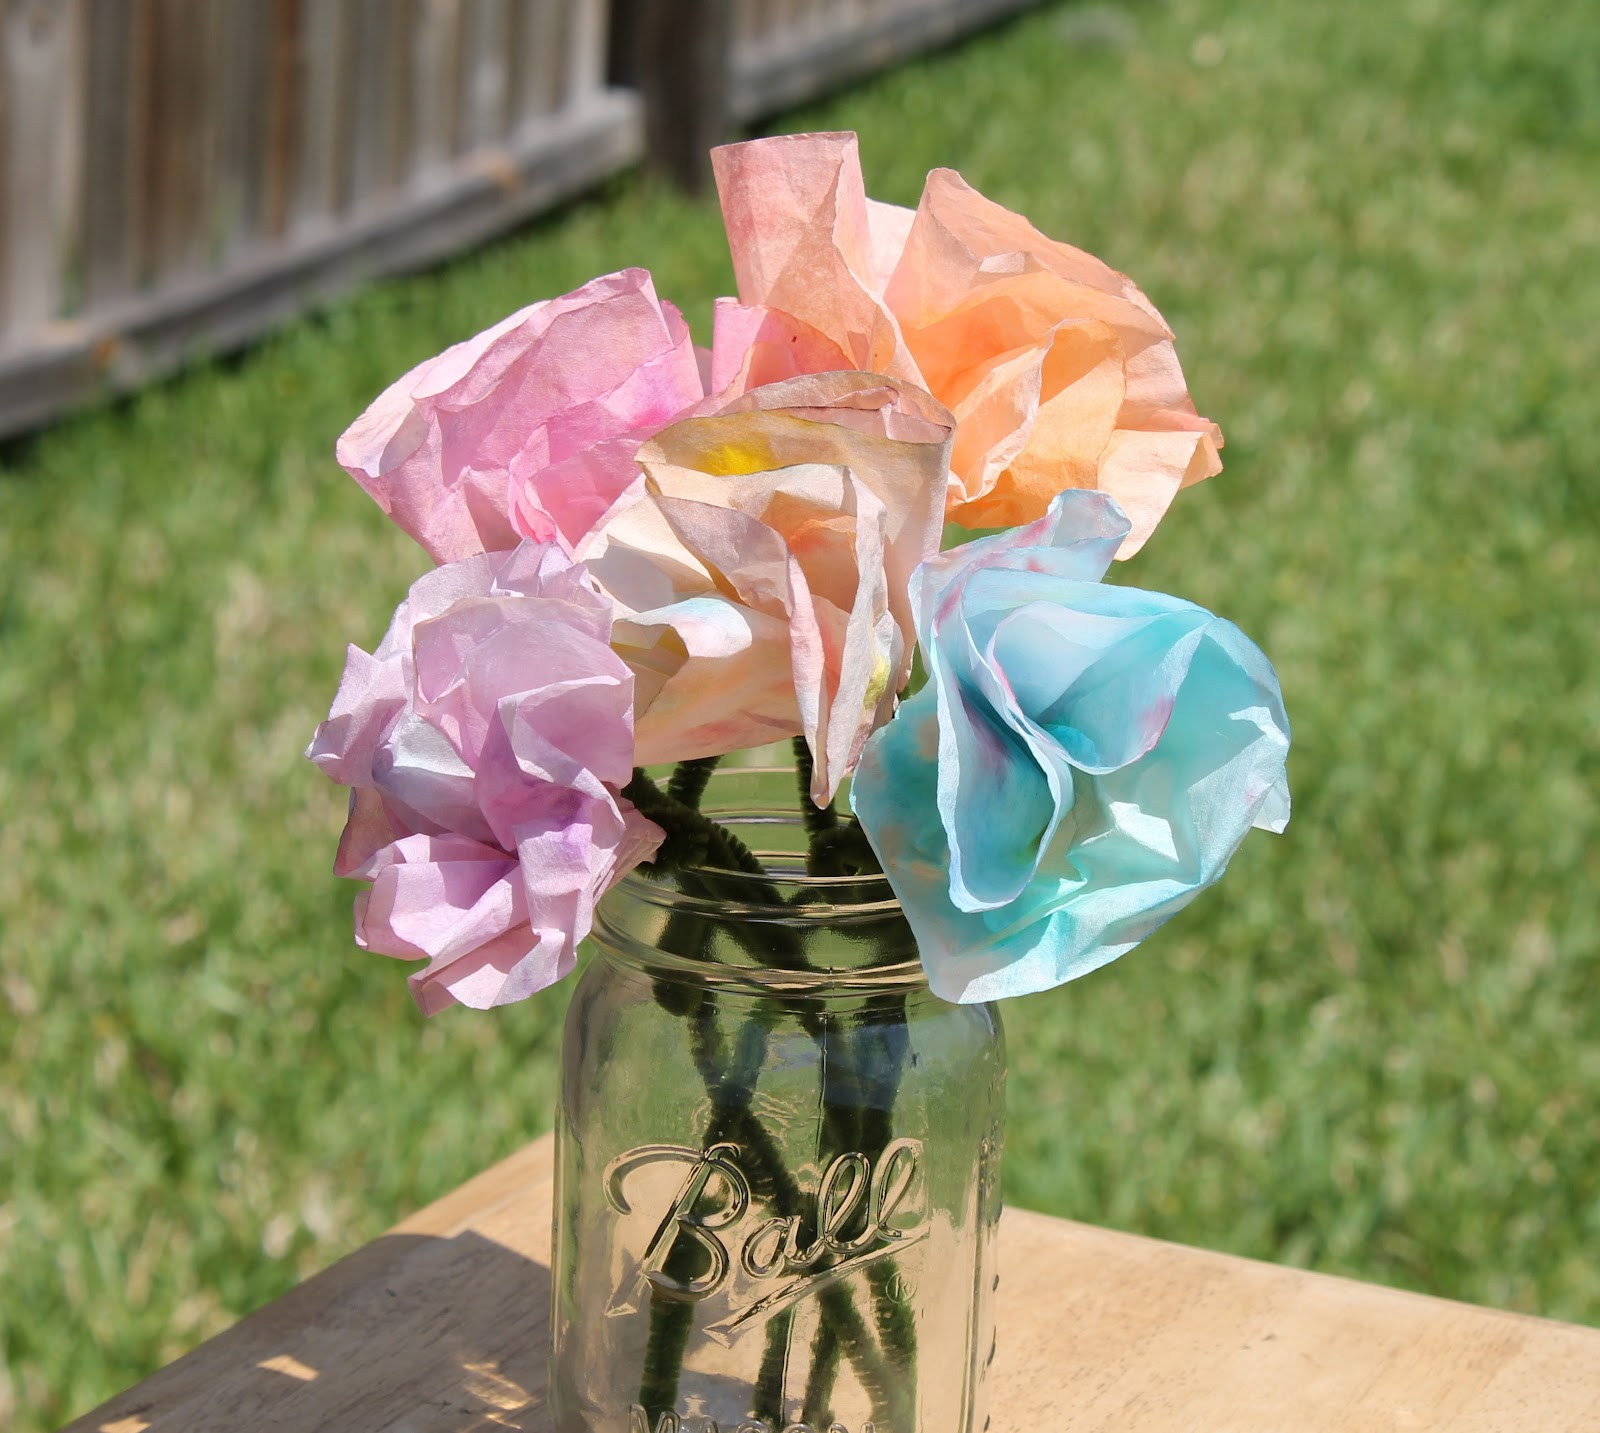 Desperate Craftwives Kid Crafted Coffee Filter Flowers